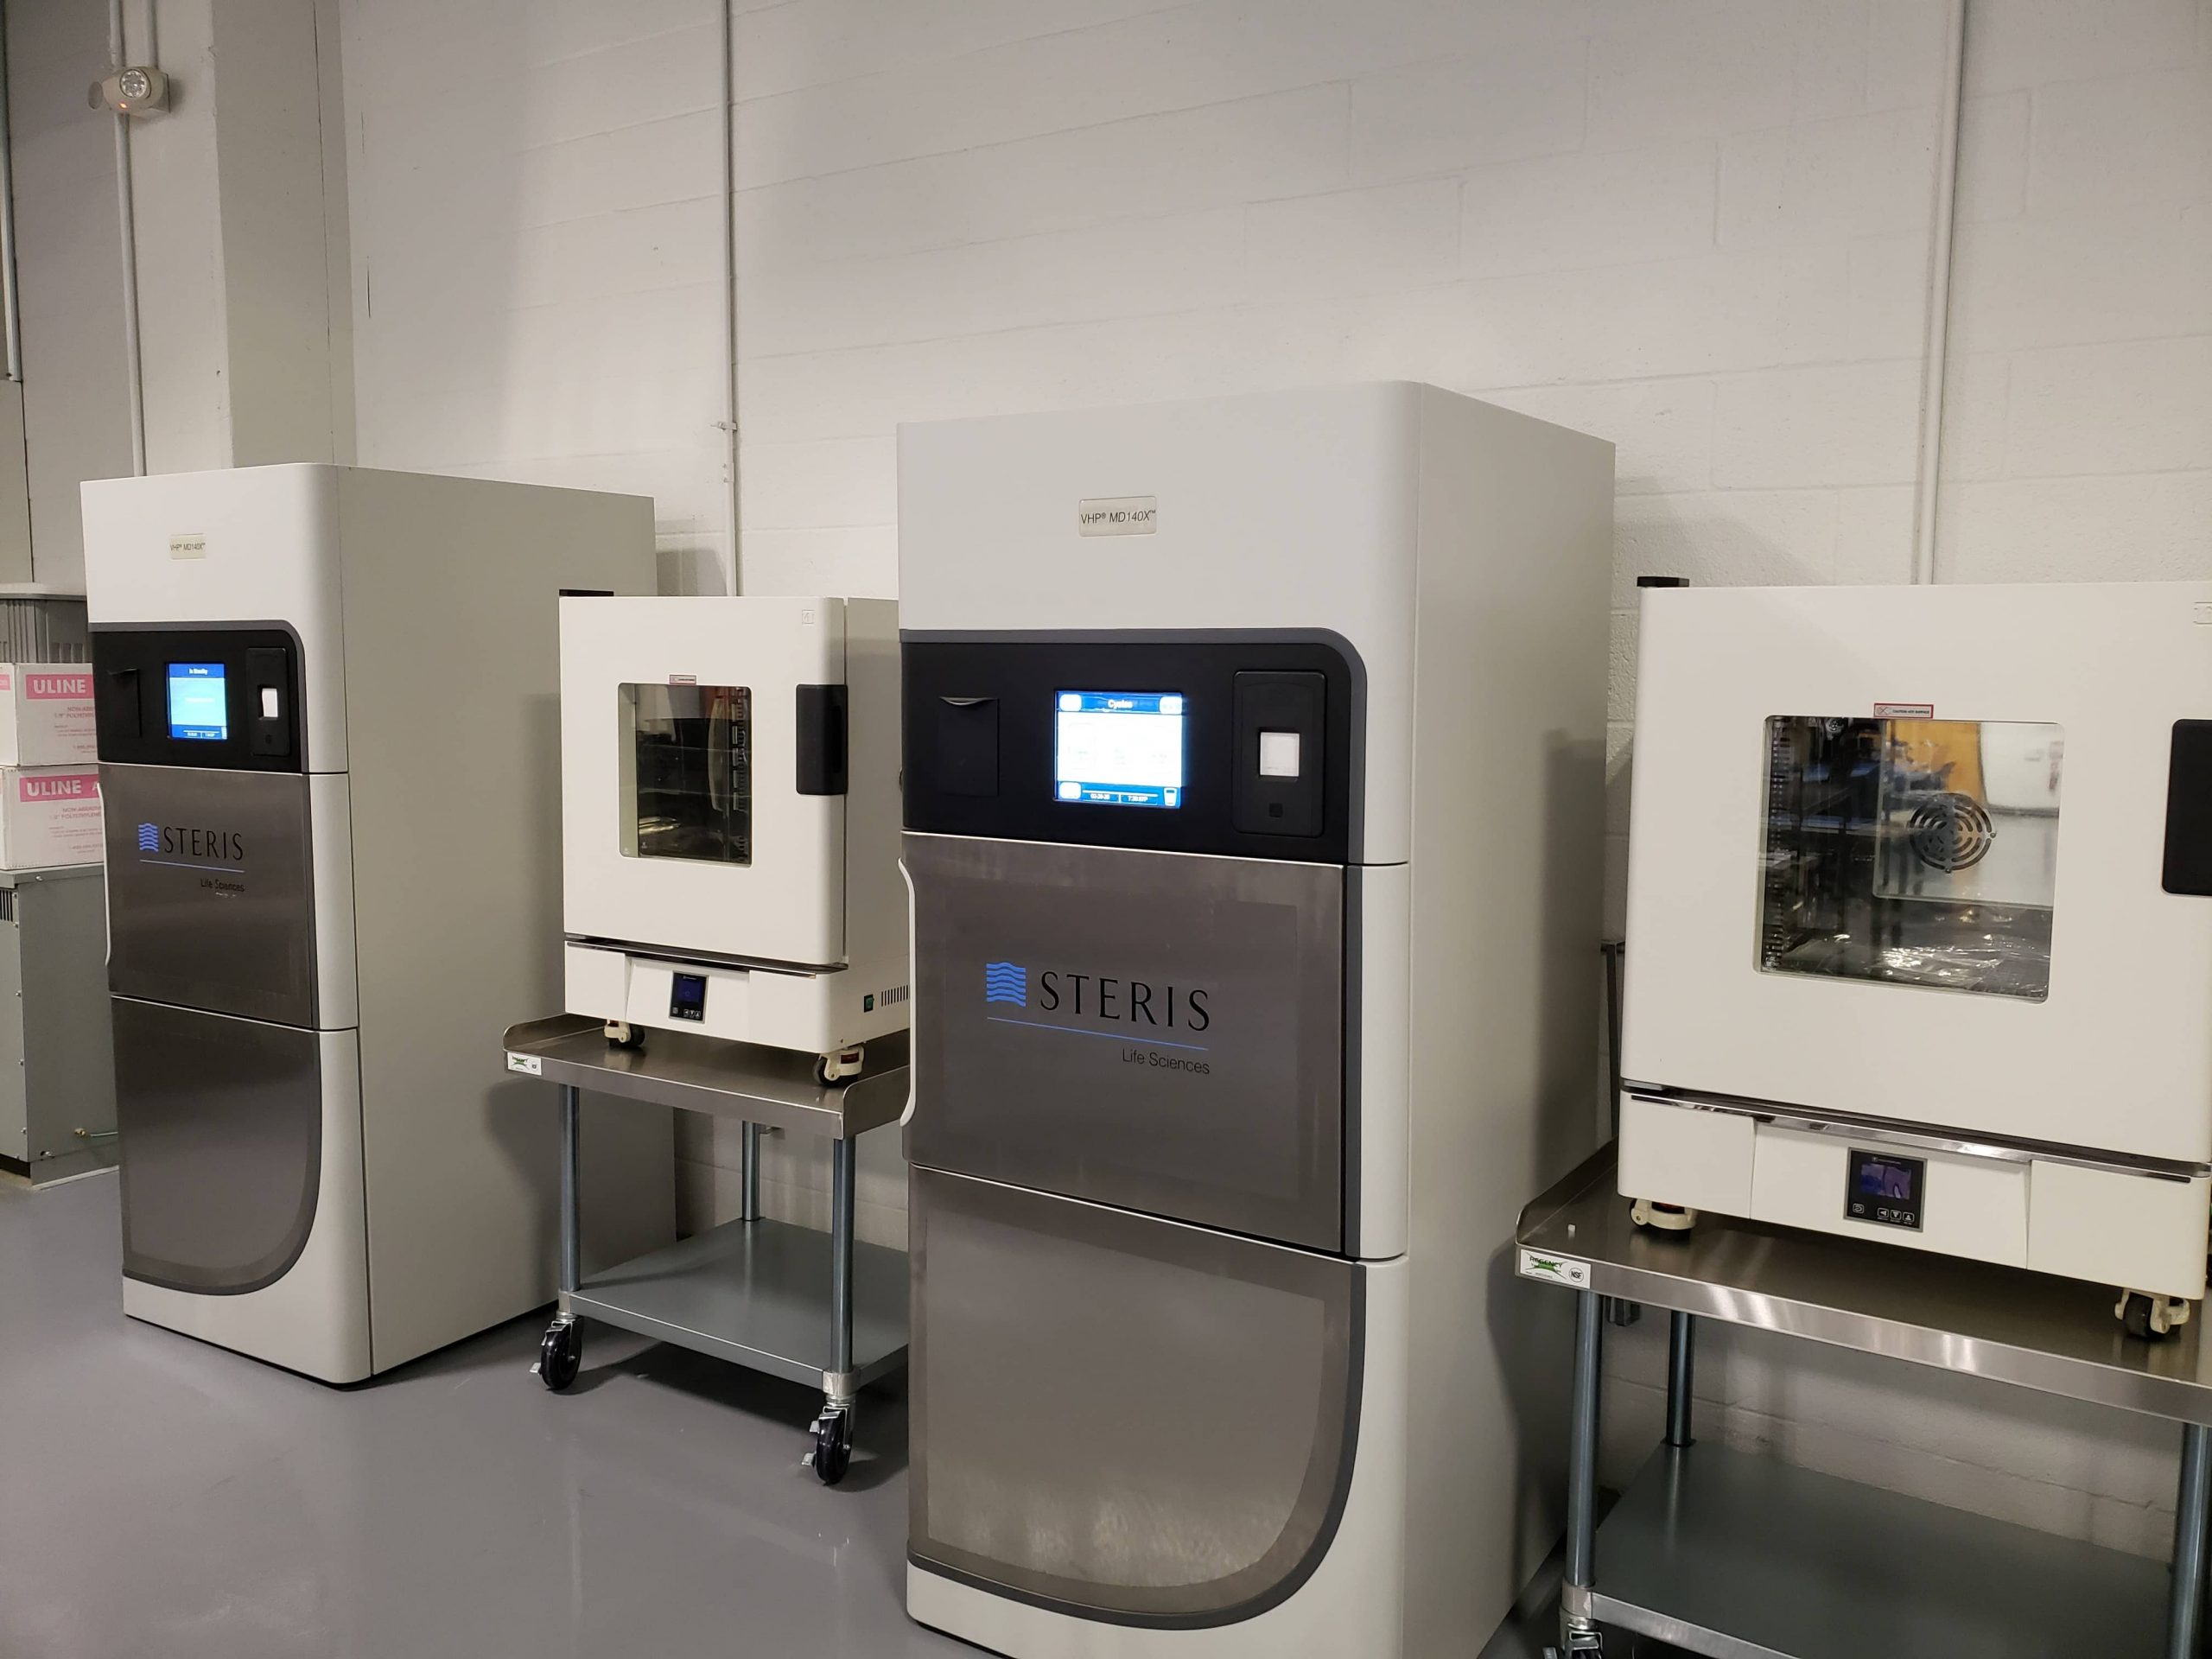 steris clean room devices